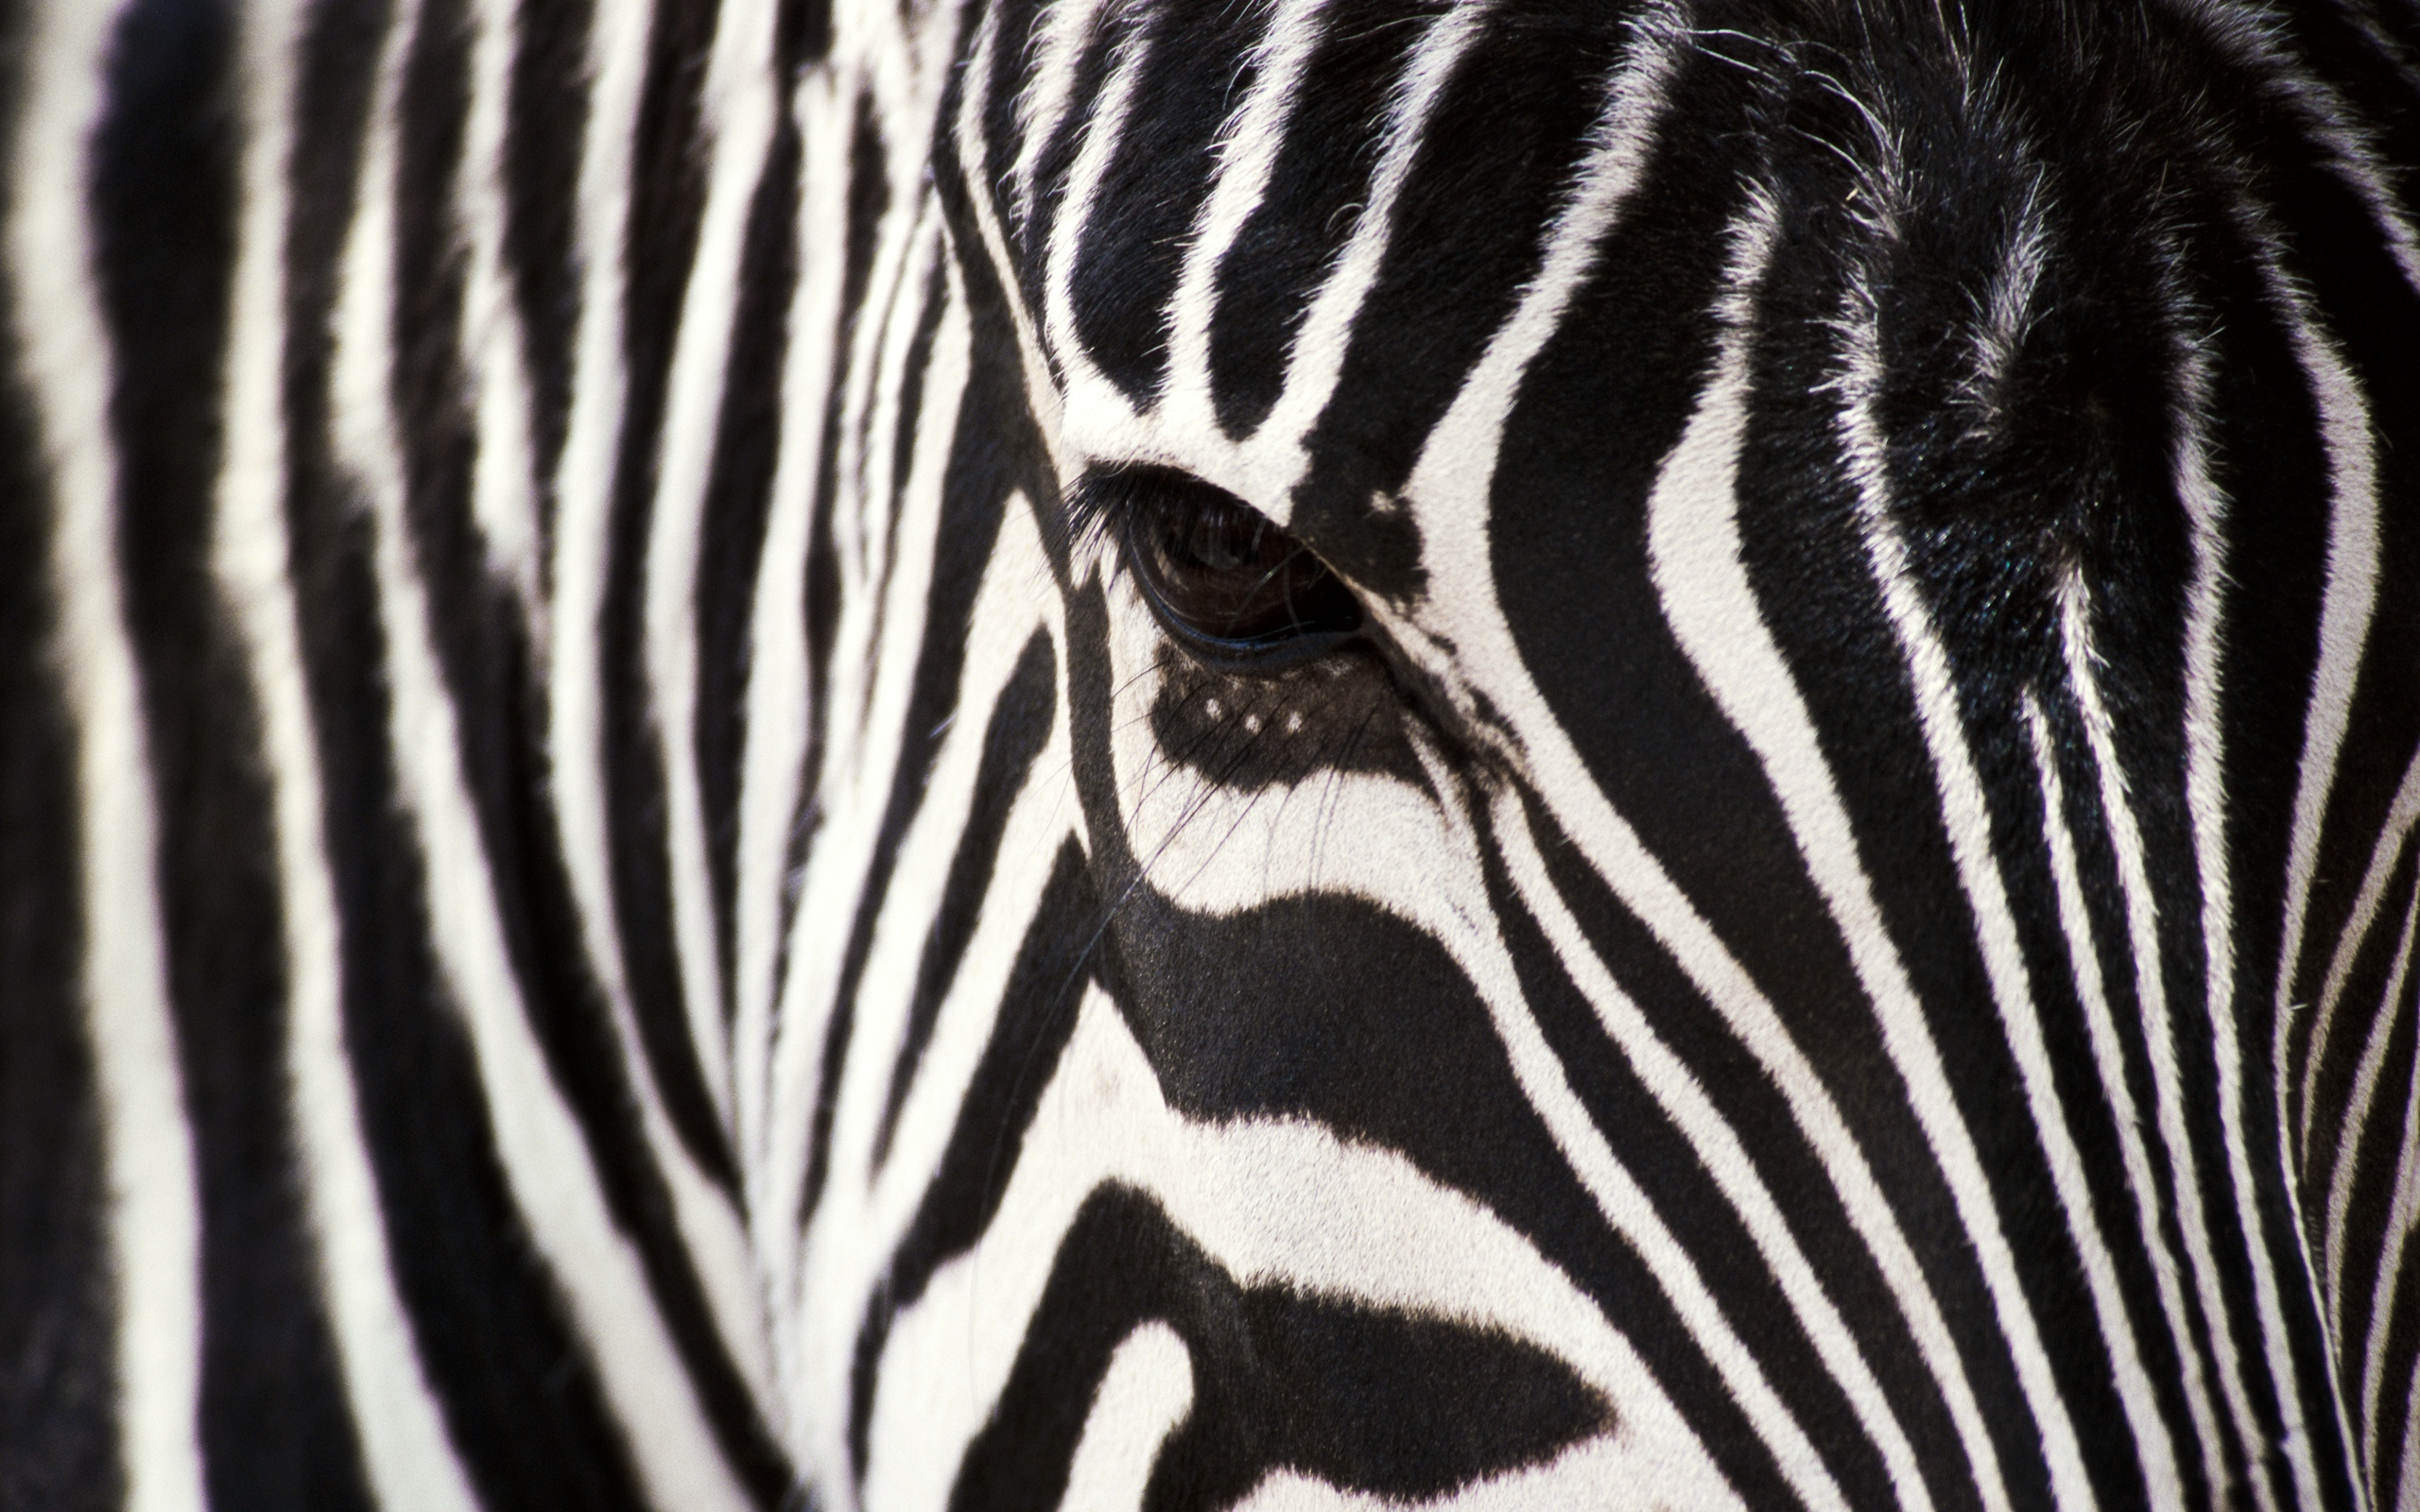 Closeup Face of Zebra with Black Stripes Patterns (click to view)